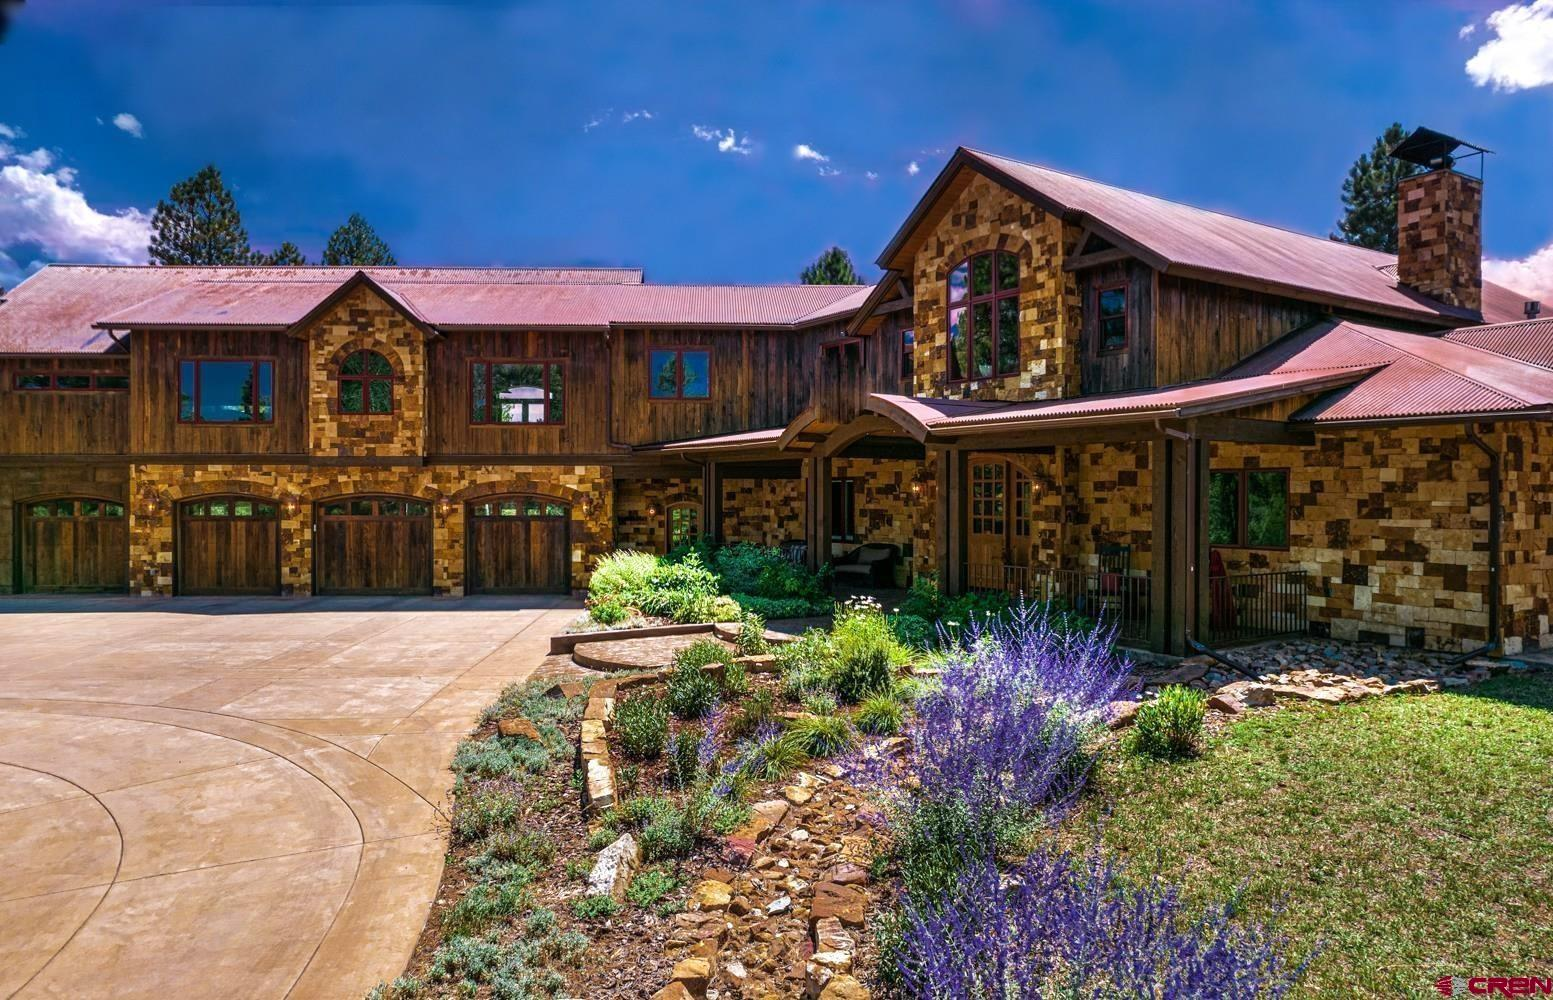 Luxurious Private Mountain Retreat Spectacular 6,281 Sq. Ft. custom home. The privacy and serenity of this property is truly awe inspiring.  Nestled on 5.94 acres surrounded by towering Ponderosa pines and pods of Aspens. Adjoining 50 acres of the Fisher Canyon preserve open space is your backyard. Located at the end of a cul-de-sac you wind down a custom concrete driveway that ends at the front door of your Mountain retreat. Attention to details is what this home is all about.  Native stone, dyed concrete walls and natural woods are just the beginning of what makes this home so unique. As you walk through the grand entrance everything is perfect.  The interior finishes consist of custom milled Alder wood cabinets, doors and trim. Pella window package includes tucked away shades between the panes. The main level features a large office with granite counters, built- in cabinets and double doors for privacy.  Great room with tongue and groove ceilings soaring 20' high with floor to ceiling windows. Hand honed wood mantle with a massive stone fireplace is stunning. An Open floor plan flows to the chef's kitchen with rich granite counters, a Viking gas cooktop, Kitchen Aid refrigerator & double convection oven, trash compactor, microwave and of course a Wine refrigerator.  The Raised granite bar is perfect for entertaining with a spacious dining area that opens to stamped concrete covered patio's and outdoor dining area. The spacious master bedroom is complete with a gas fireplace and stone mantle The master bath has double sinks, his and her closets, steam shower and Kohler jetted tub. Mud room off the 4-car heated garage and large laundry area with lots of storage. Upstairs has a cozy sitting area, two large bedrooms with en-suite baths, plus a recreation room with pool table, basketball/work out area, kitchen/bar, media space and deck. There is plenty of room to store your toys in the heated 3-car detached garage, come enjoy cool crisp mornings as you gaze across the